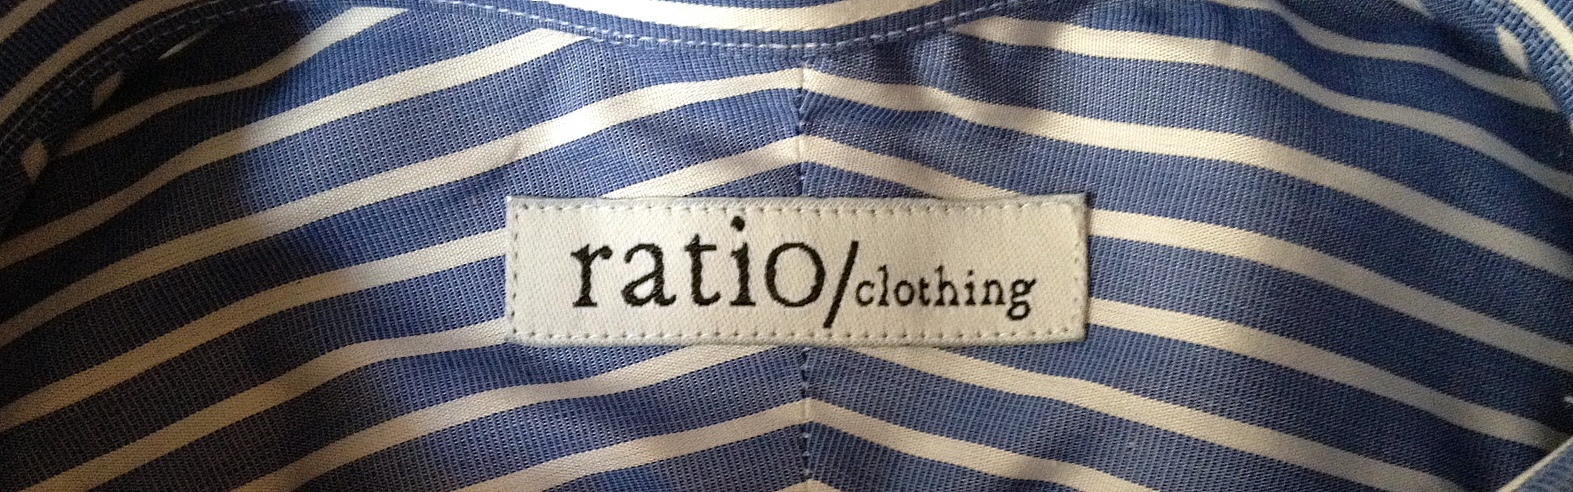 On average, Ratio Clothing offers 0 codes or coupons per month. Check this page often, or follow Ratio Clothing (hit the follow button up top) to keep updated on their latest discount codes. Check for Ratio Clothing's promo code exclusions. Ratio Clothing promo codes sometimes have exceptions on certain categories or brands/5(3).